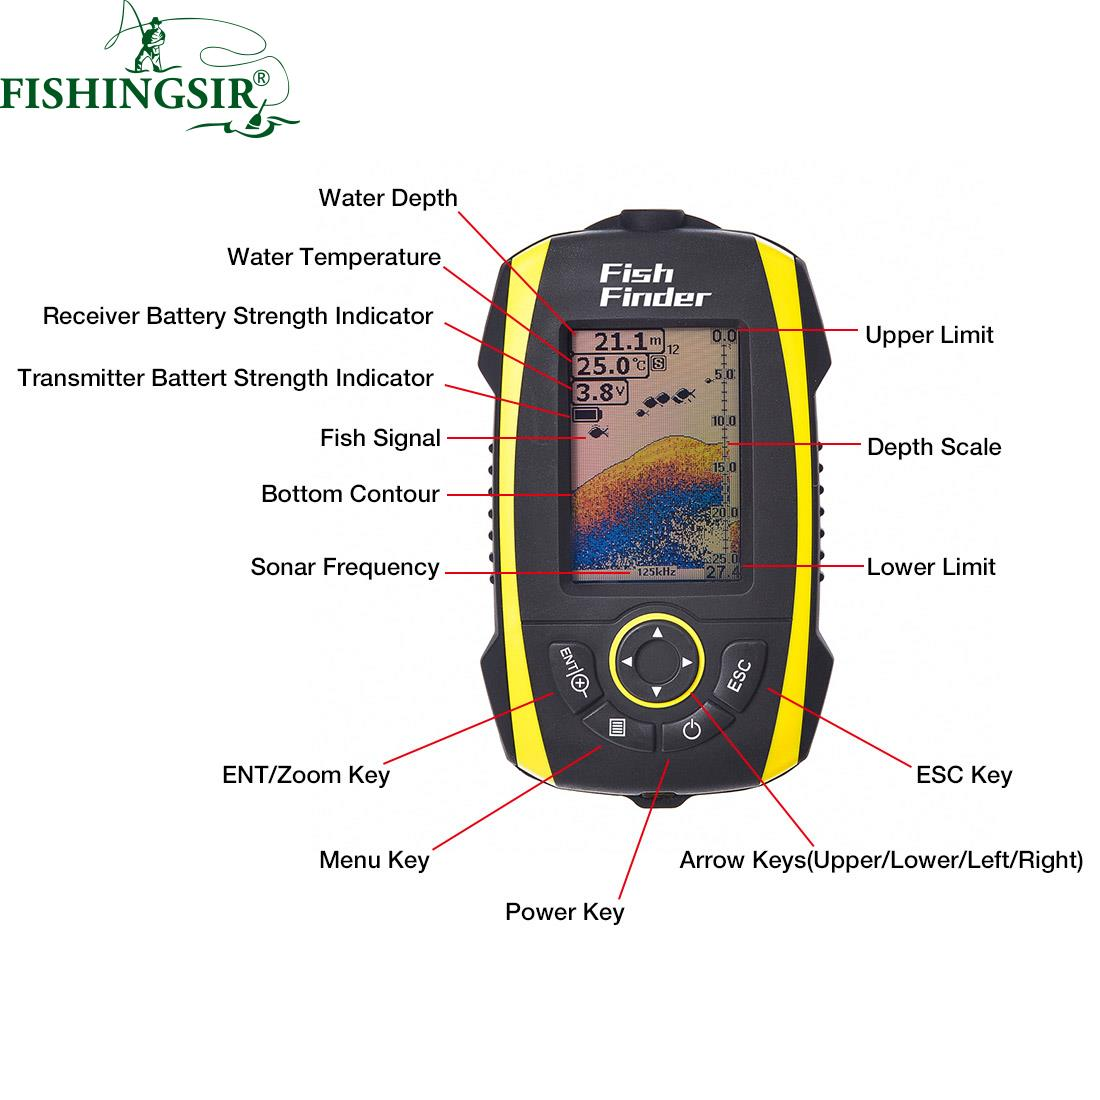 aliexpress : buy wireless depth sounder fish finder underwater, Fish Finder